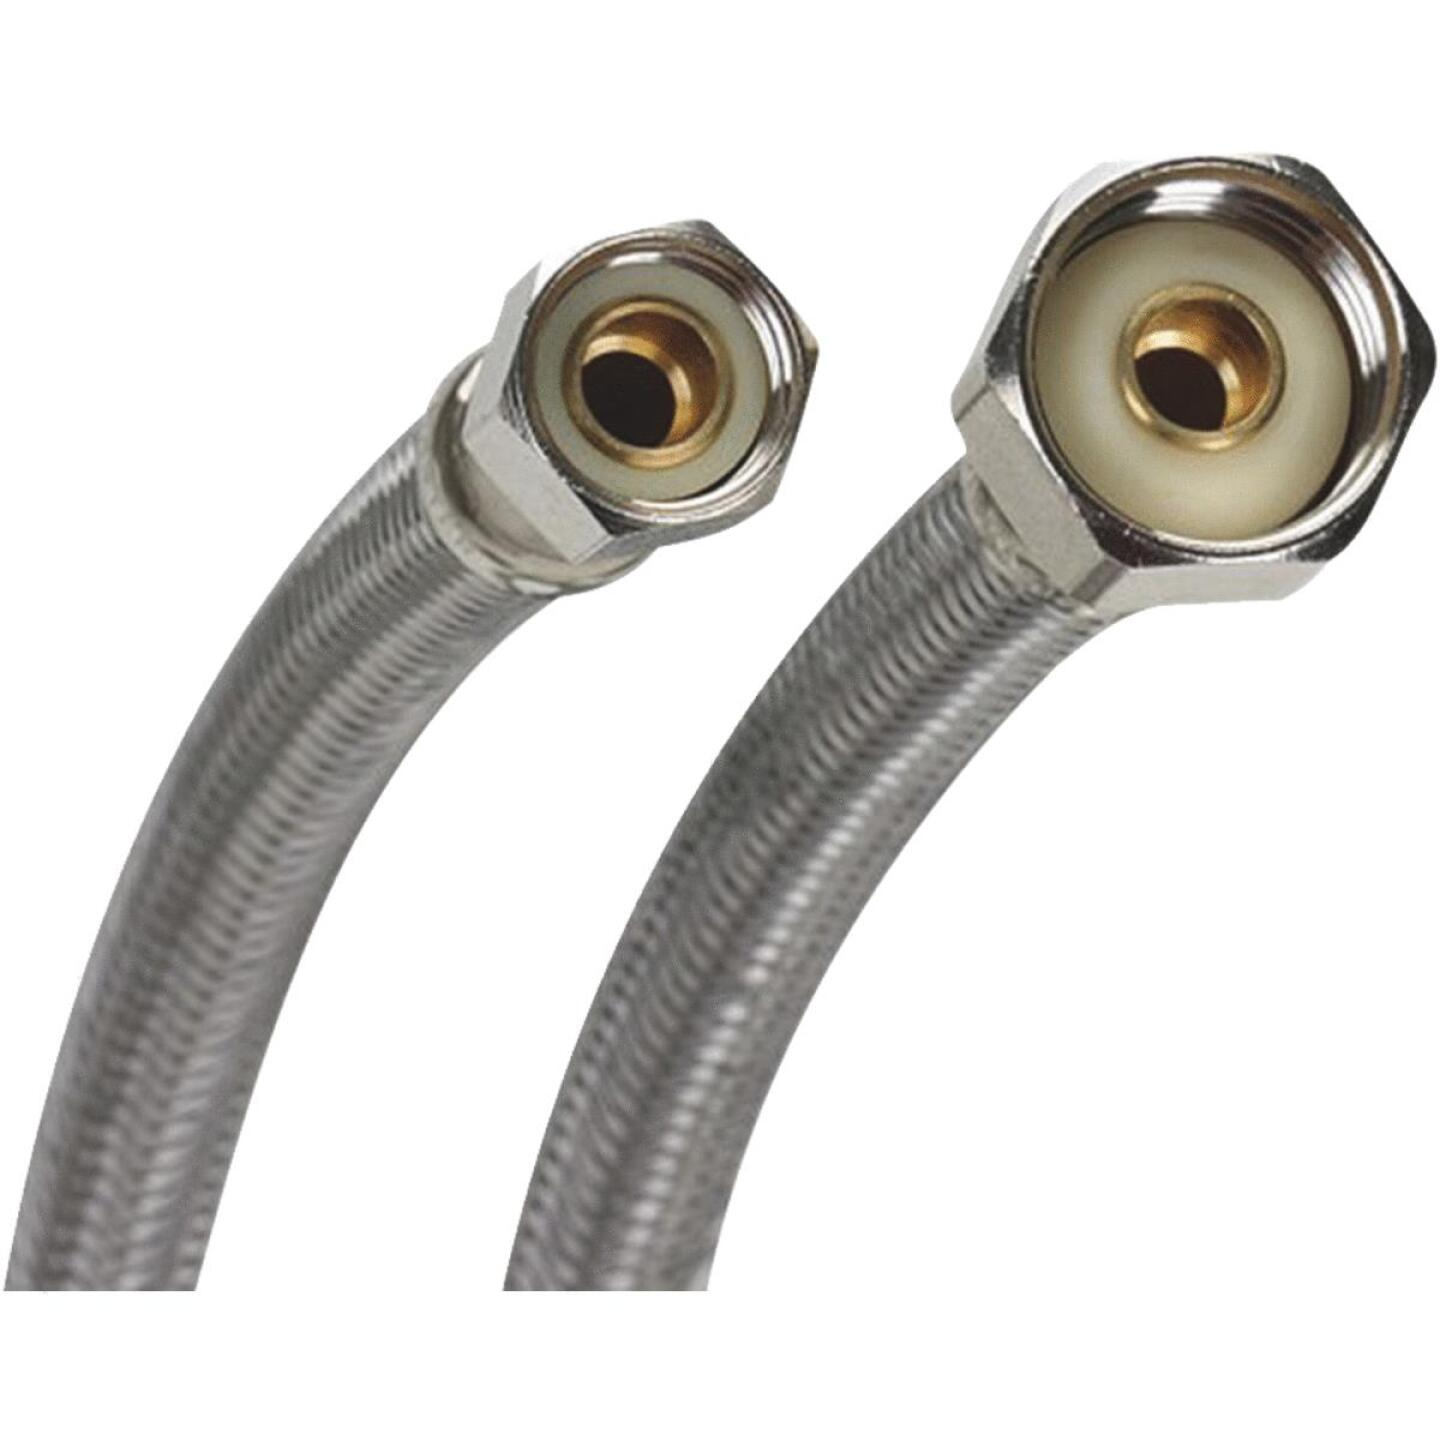 Fluidmaster 3/8 In. C x 1/2 In. FIP Polymer Core W/Braided stainless Steel Faucet Connector Image 1